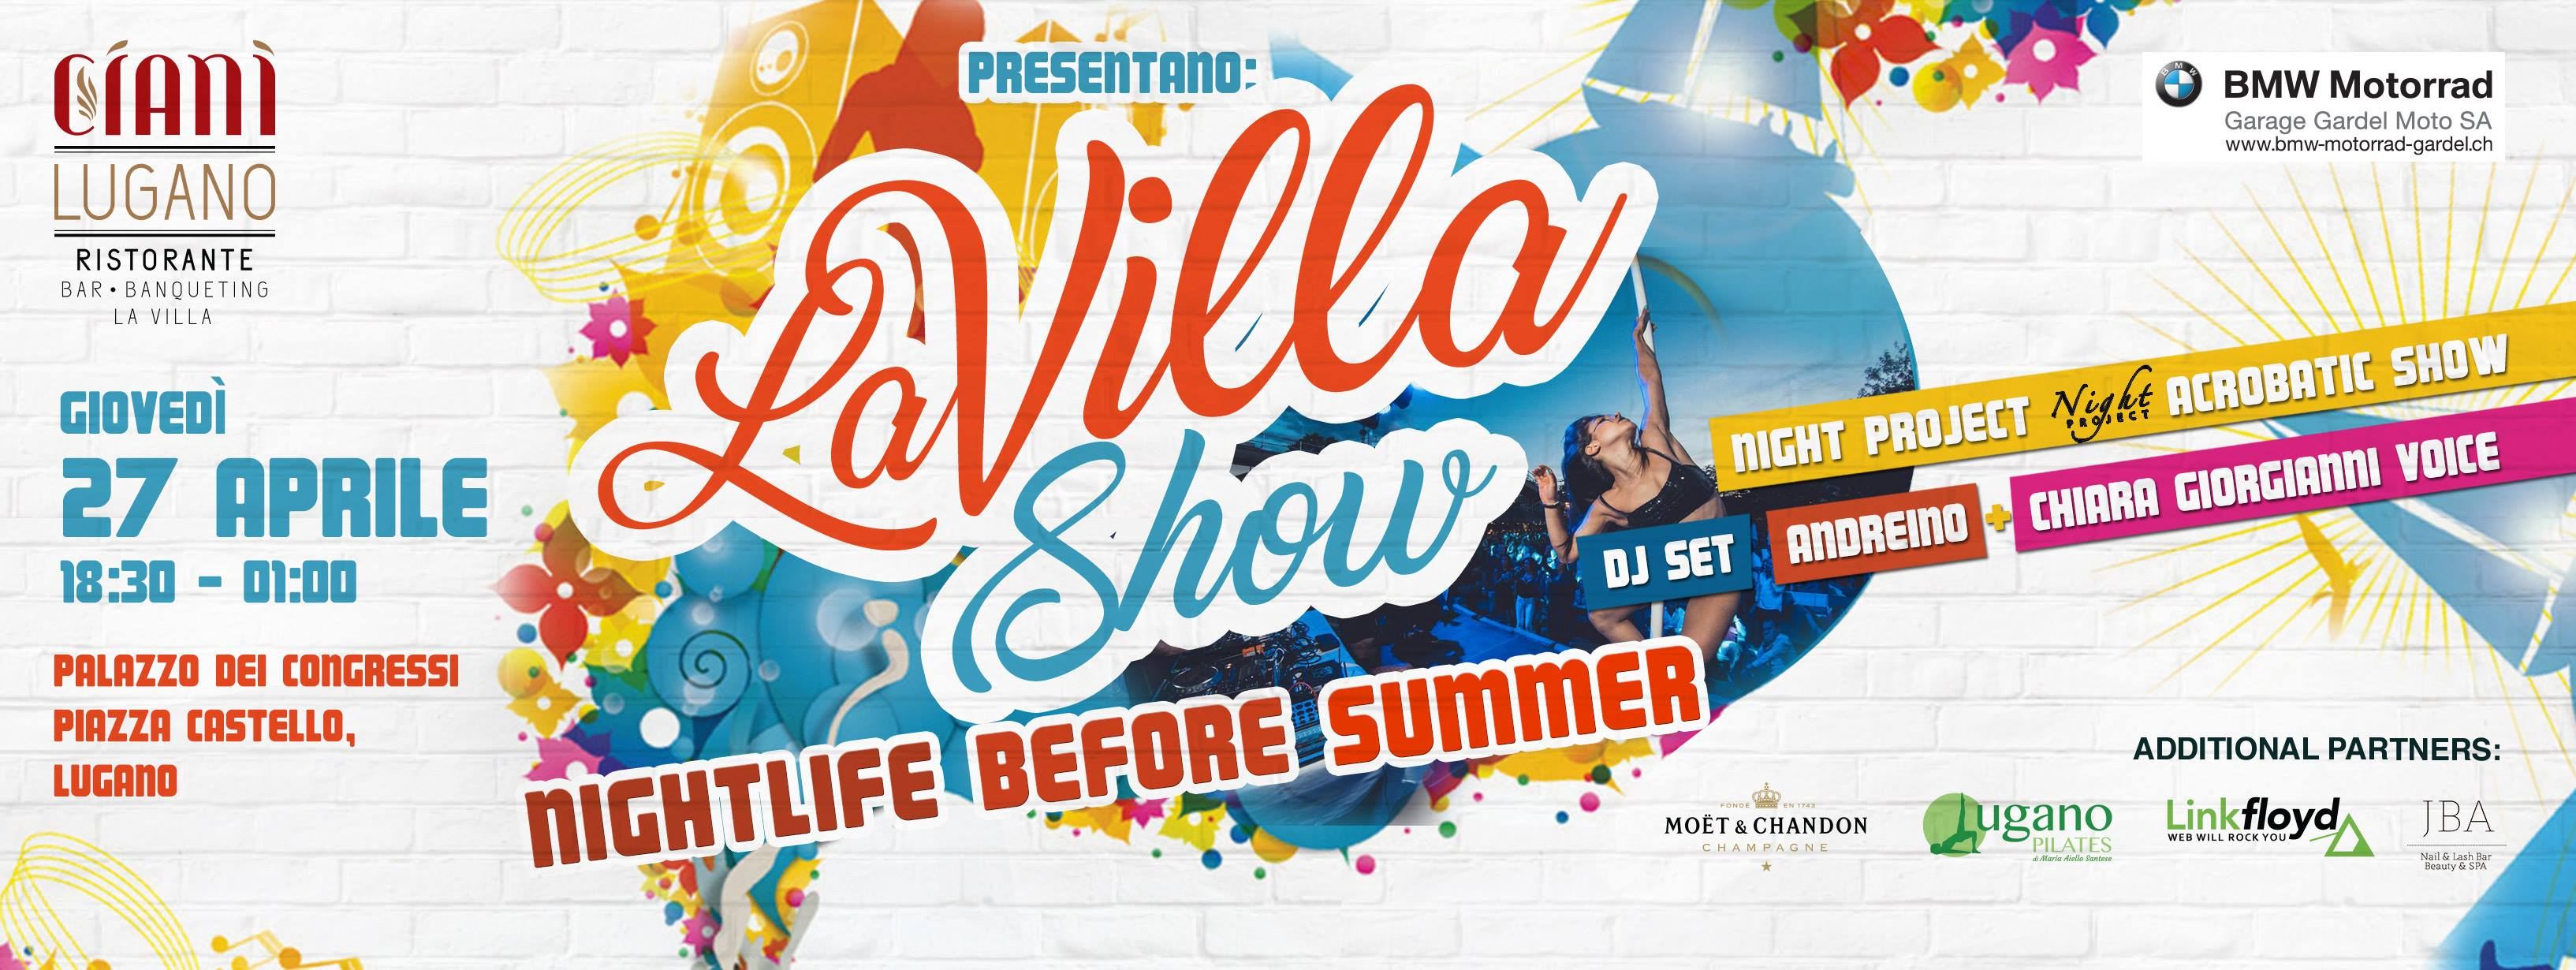 La Villa Show: Nightlife before Summer!